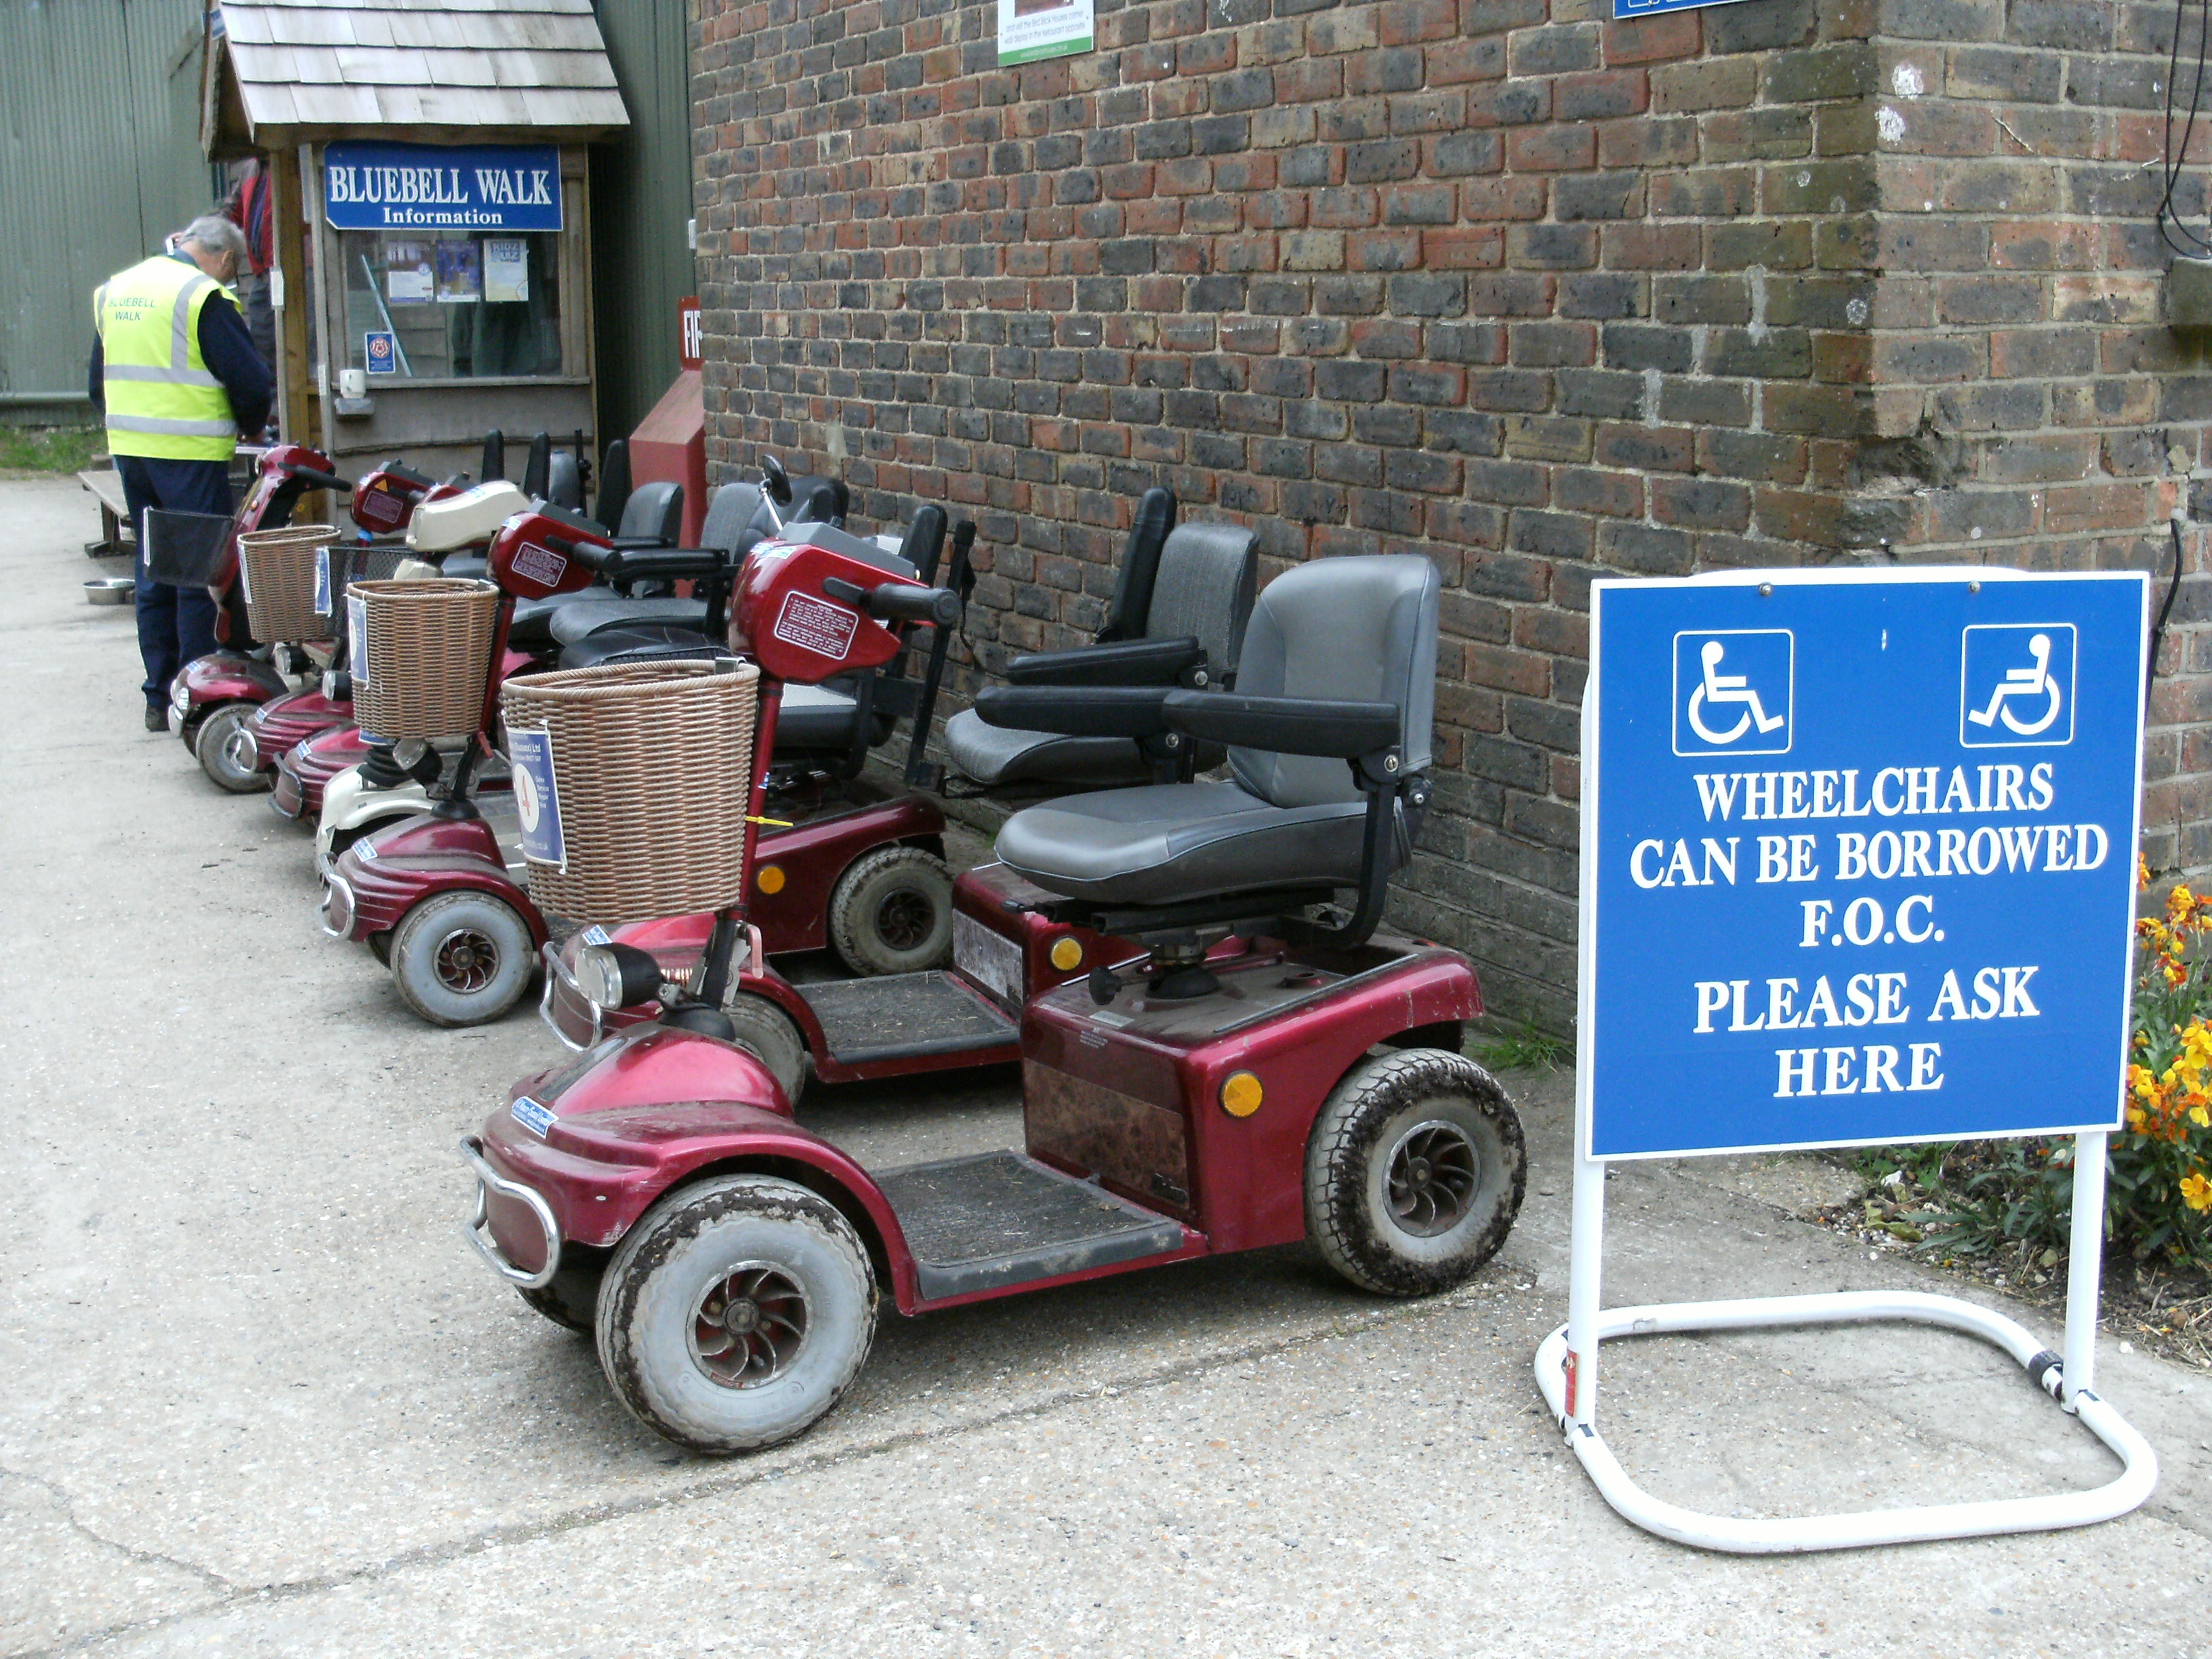 Mobility Scooters at Arlington Bluebell Walk